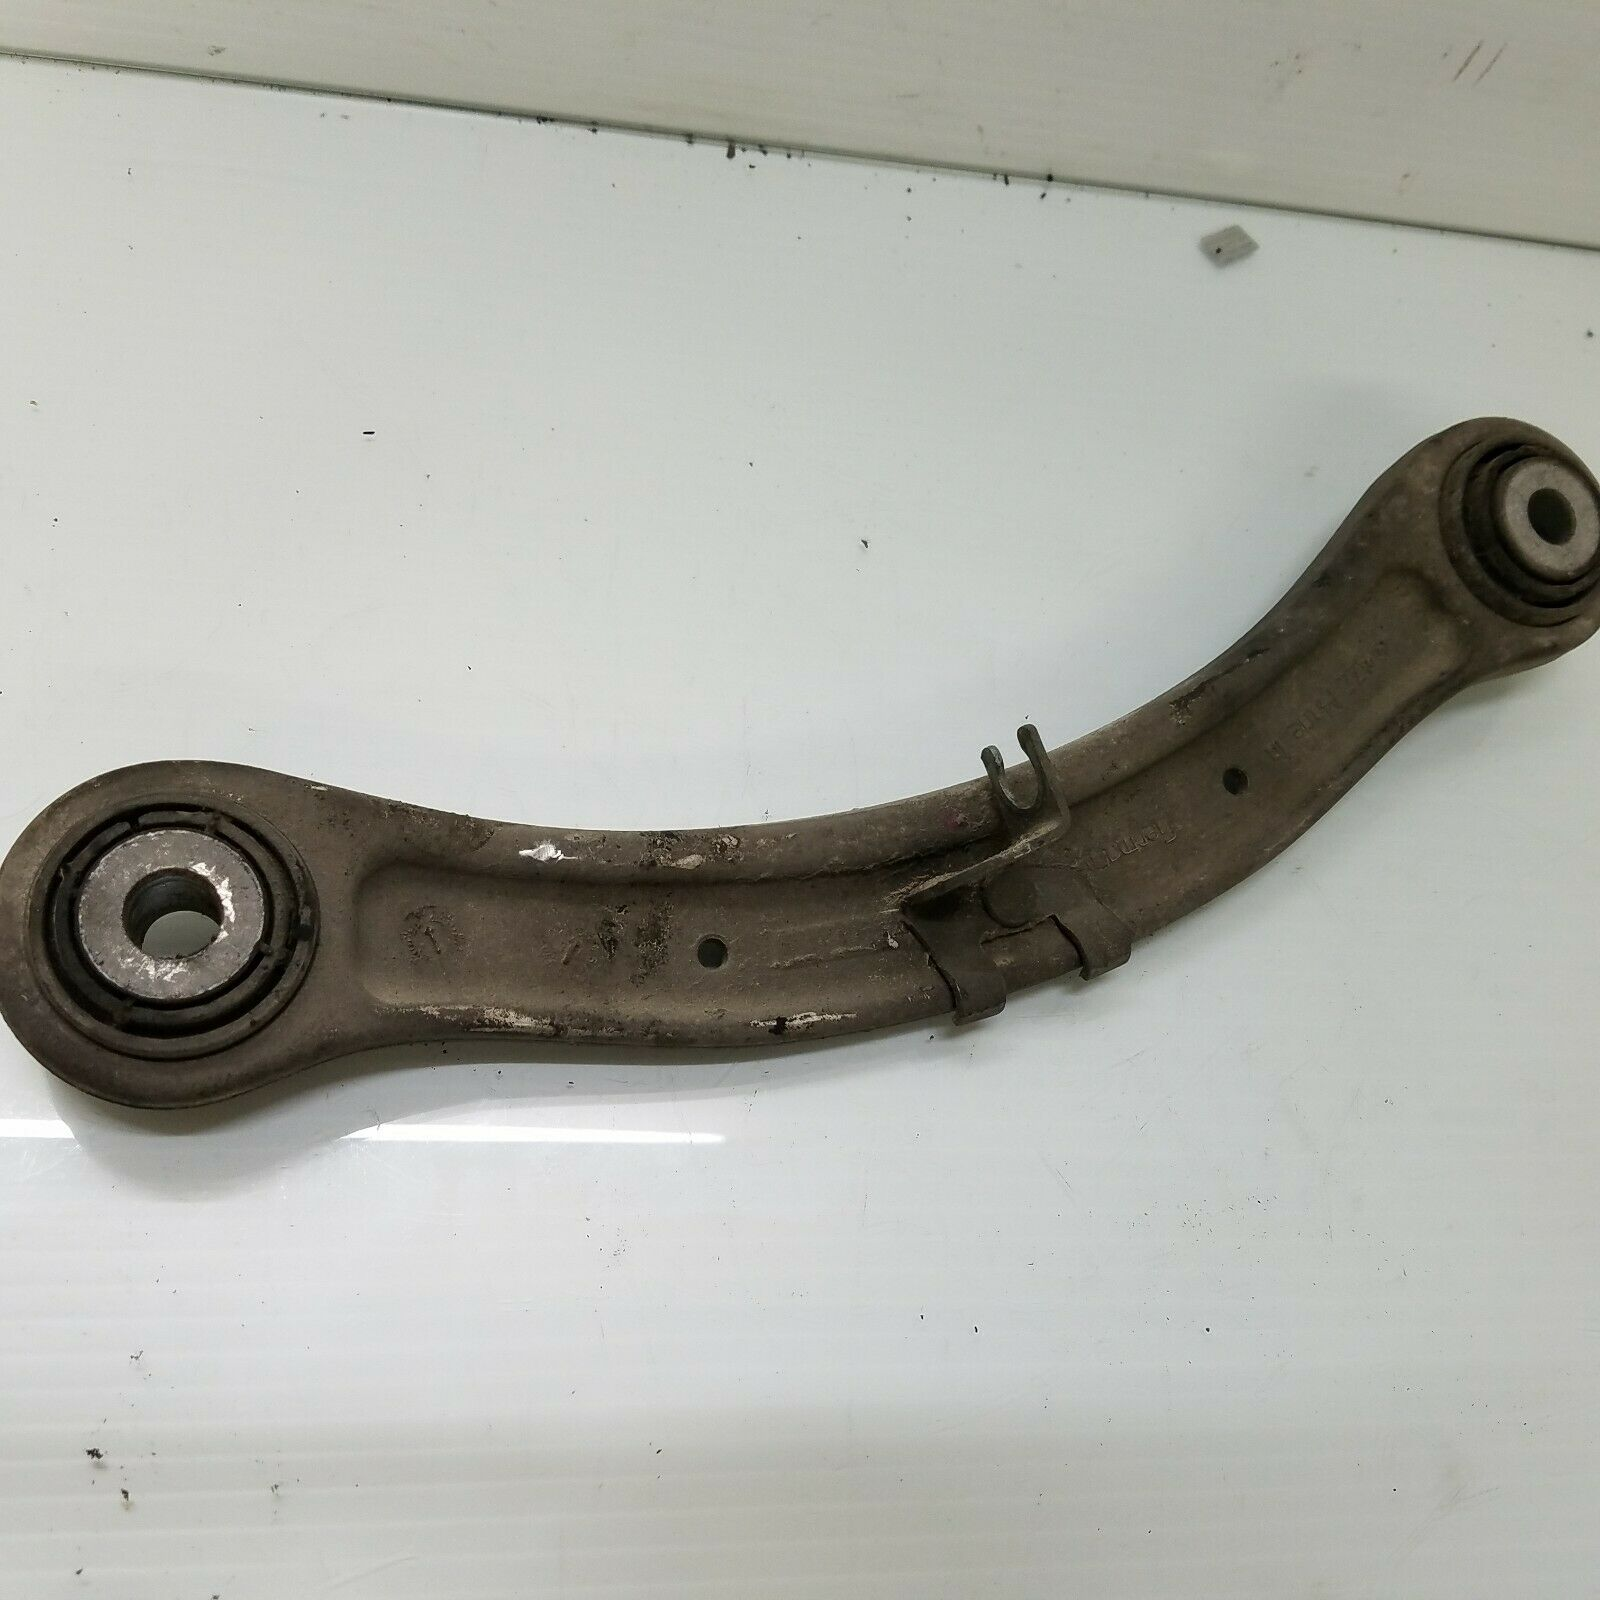 2003-2006 PORSCHE CAYENNE REAR RIGHT UPPER FORWARD CONTROL ARM OEM 7L0505375 Does not apply Po11Cay